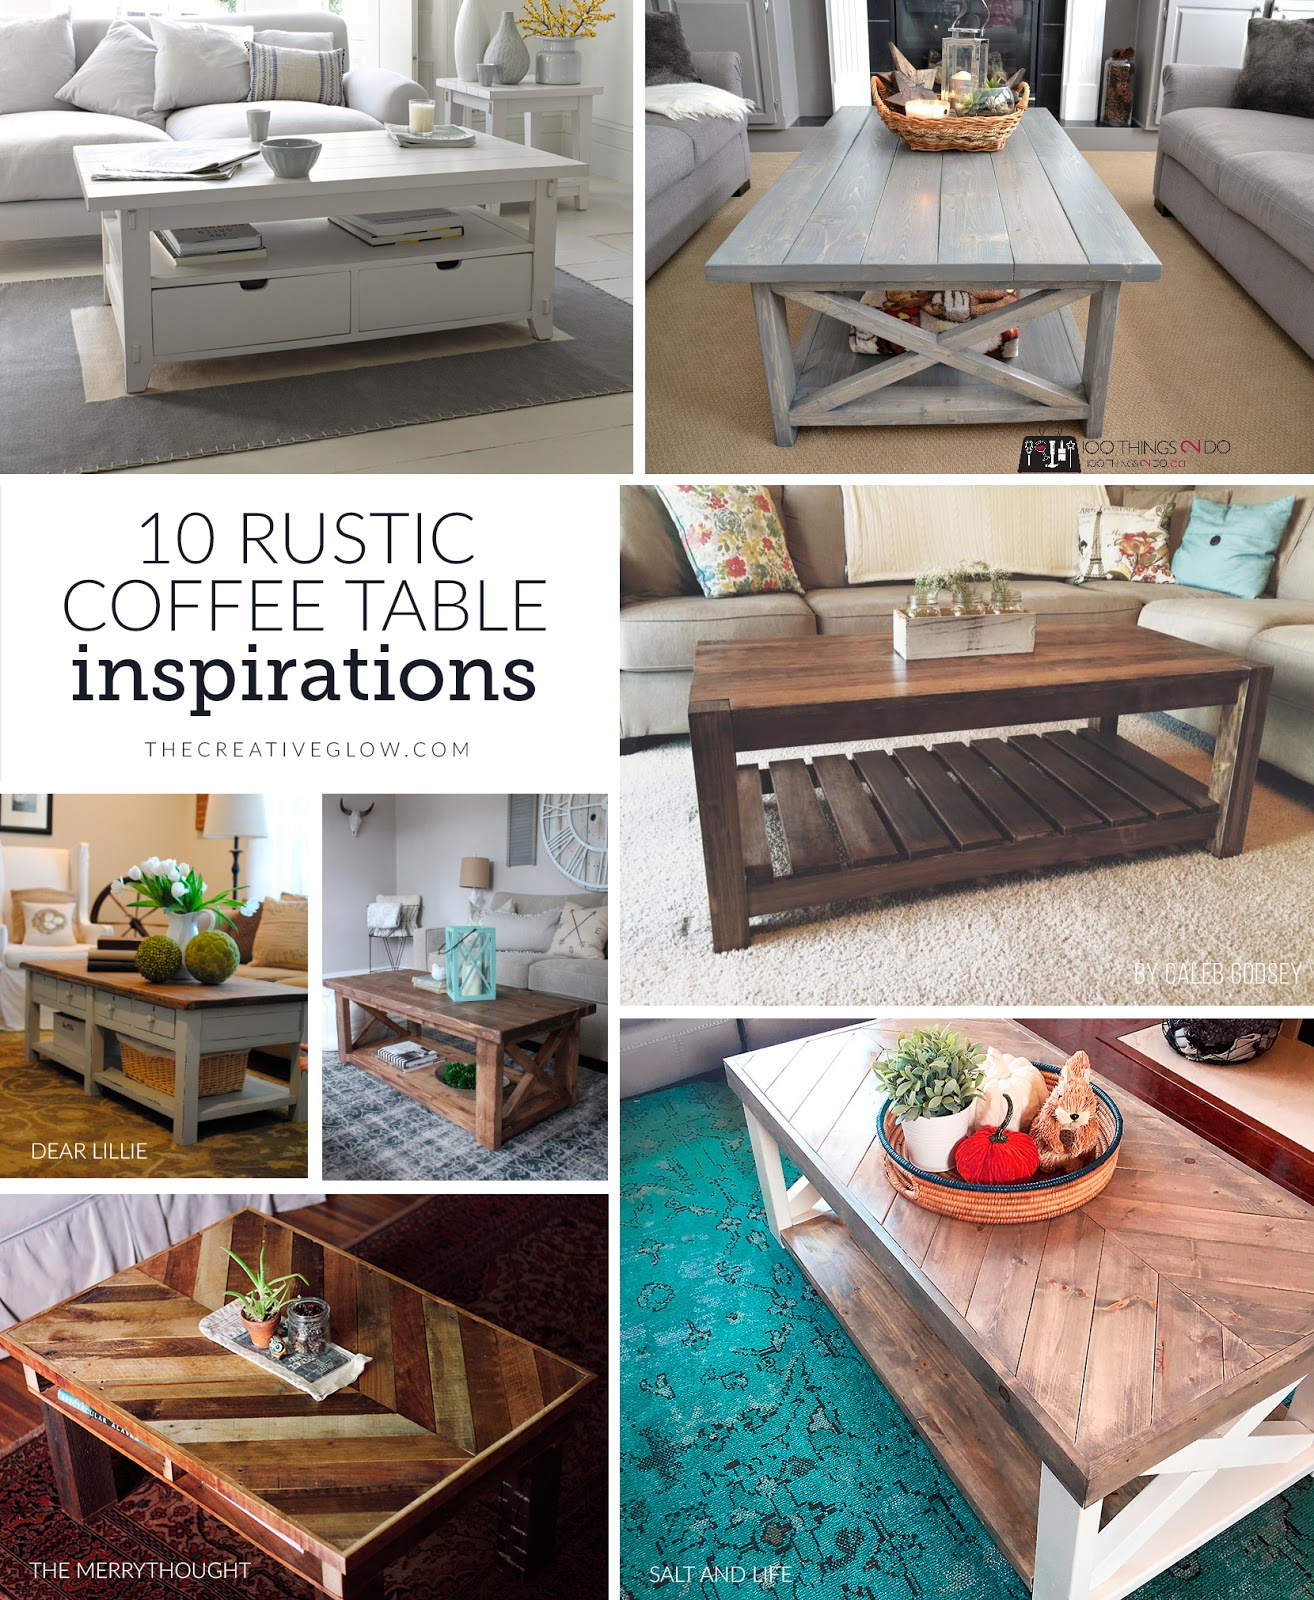 10 Rustic Coffee Table Inspirations